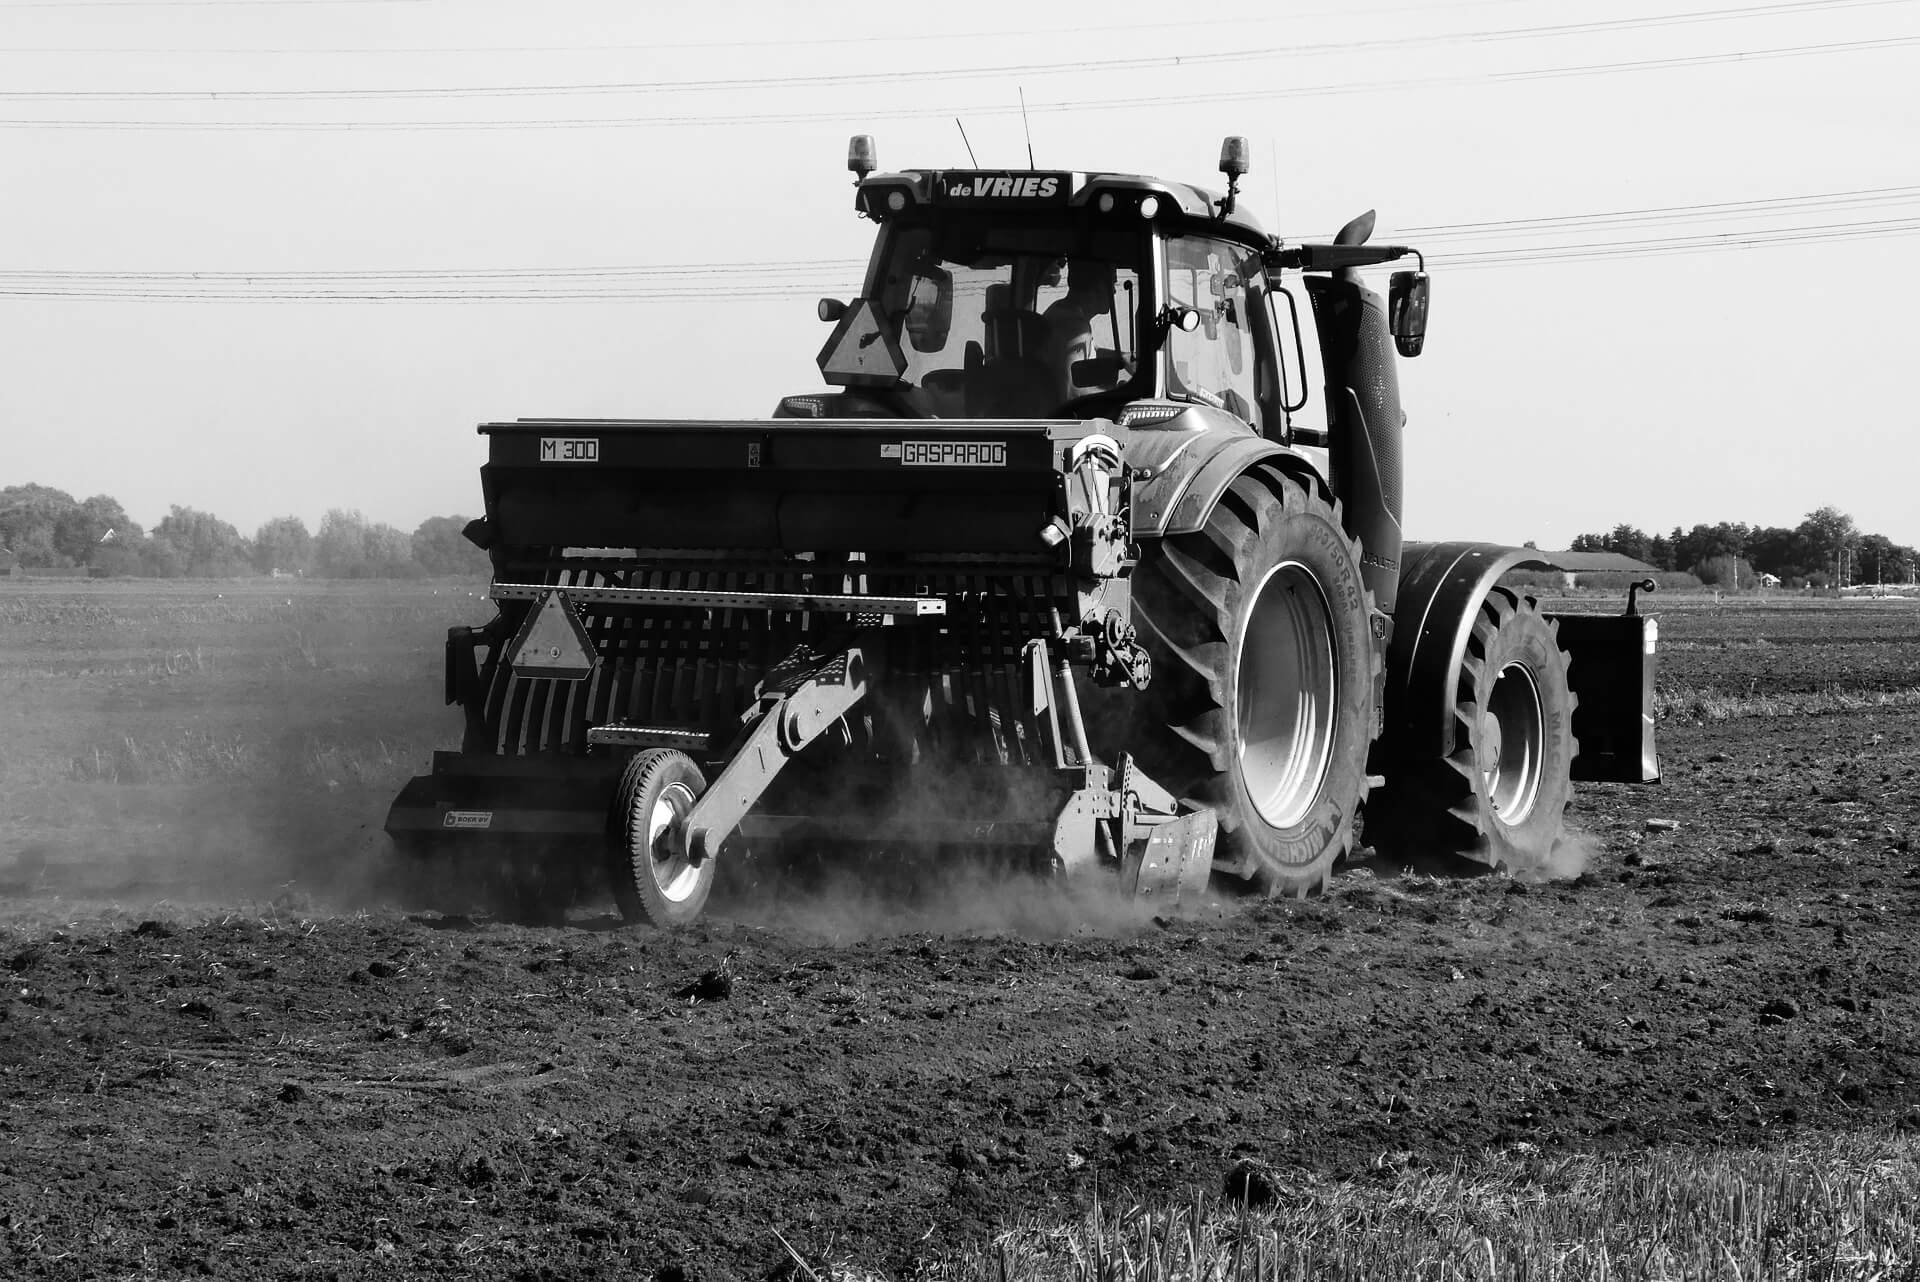 A tractor moves through a field.